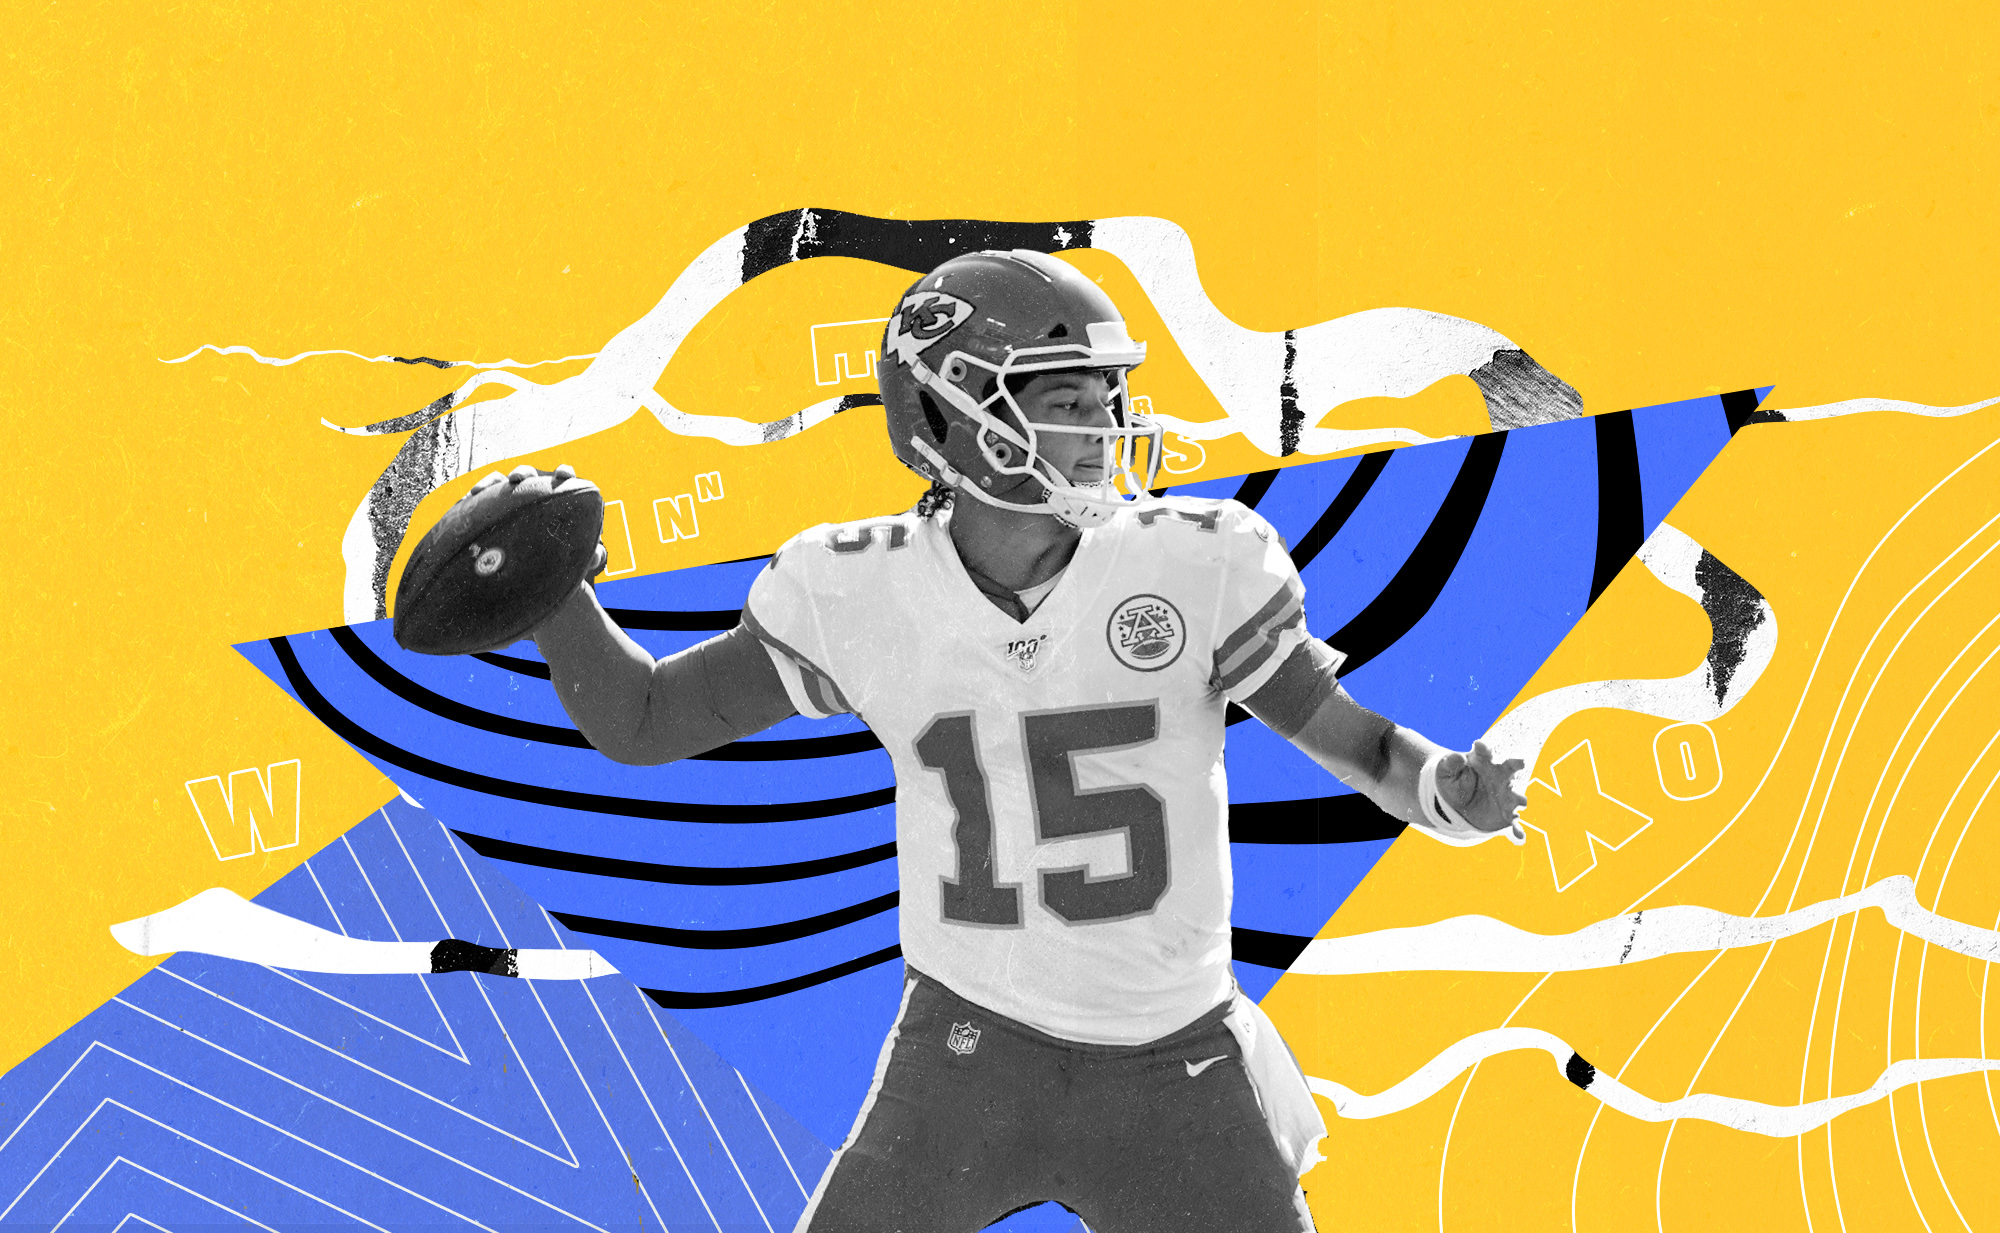 Chiefs QB Patrick Mahomes getting ready to pass superimposed upon a blue and yellow background.